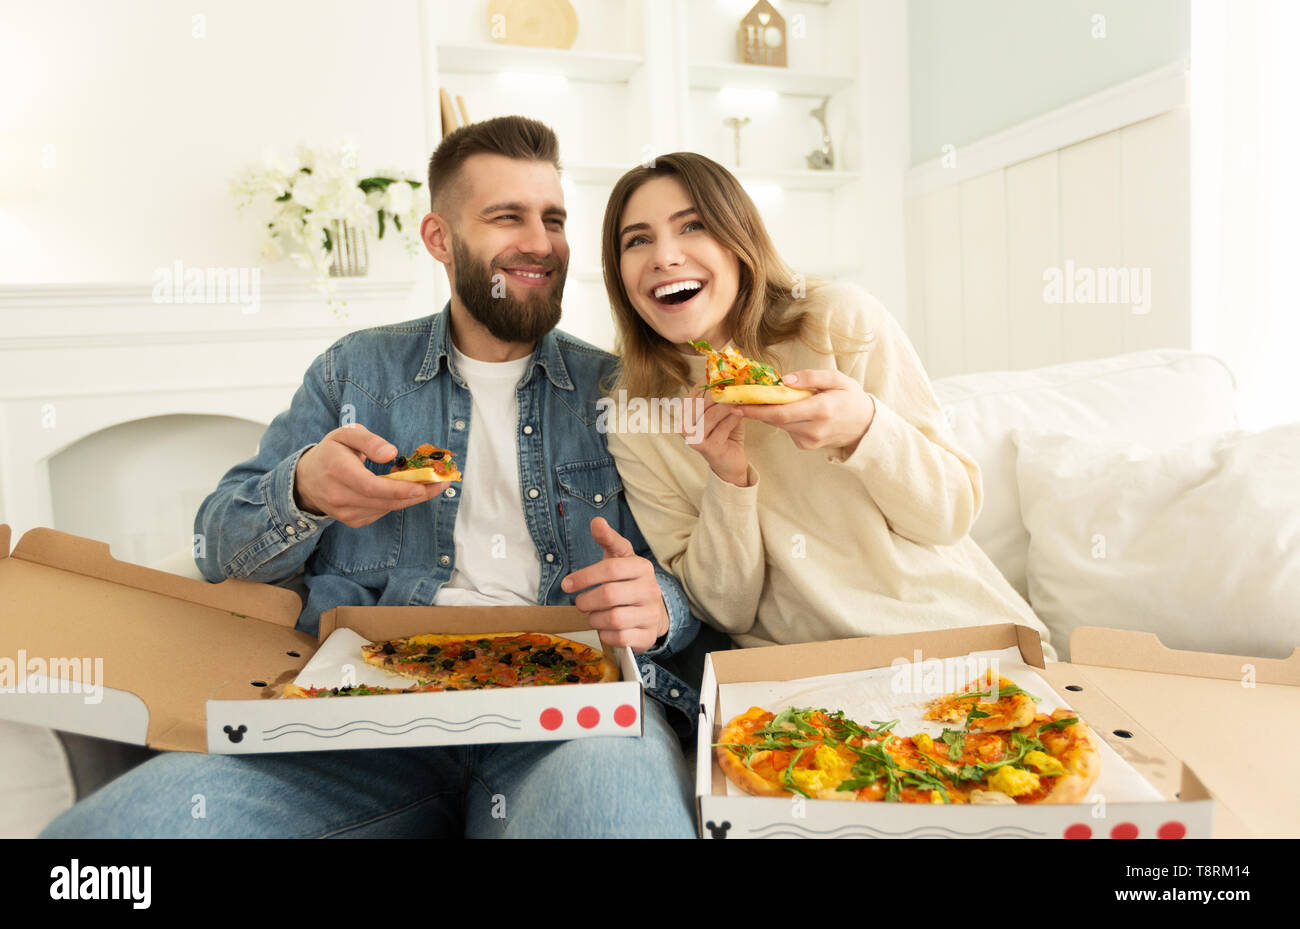 Cheerful Couple Eating Pizza In Front Of TV - Stock Image